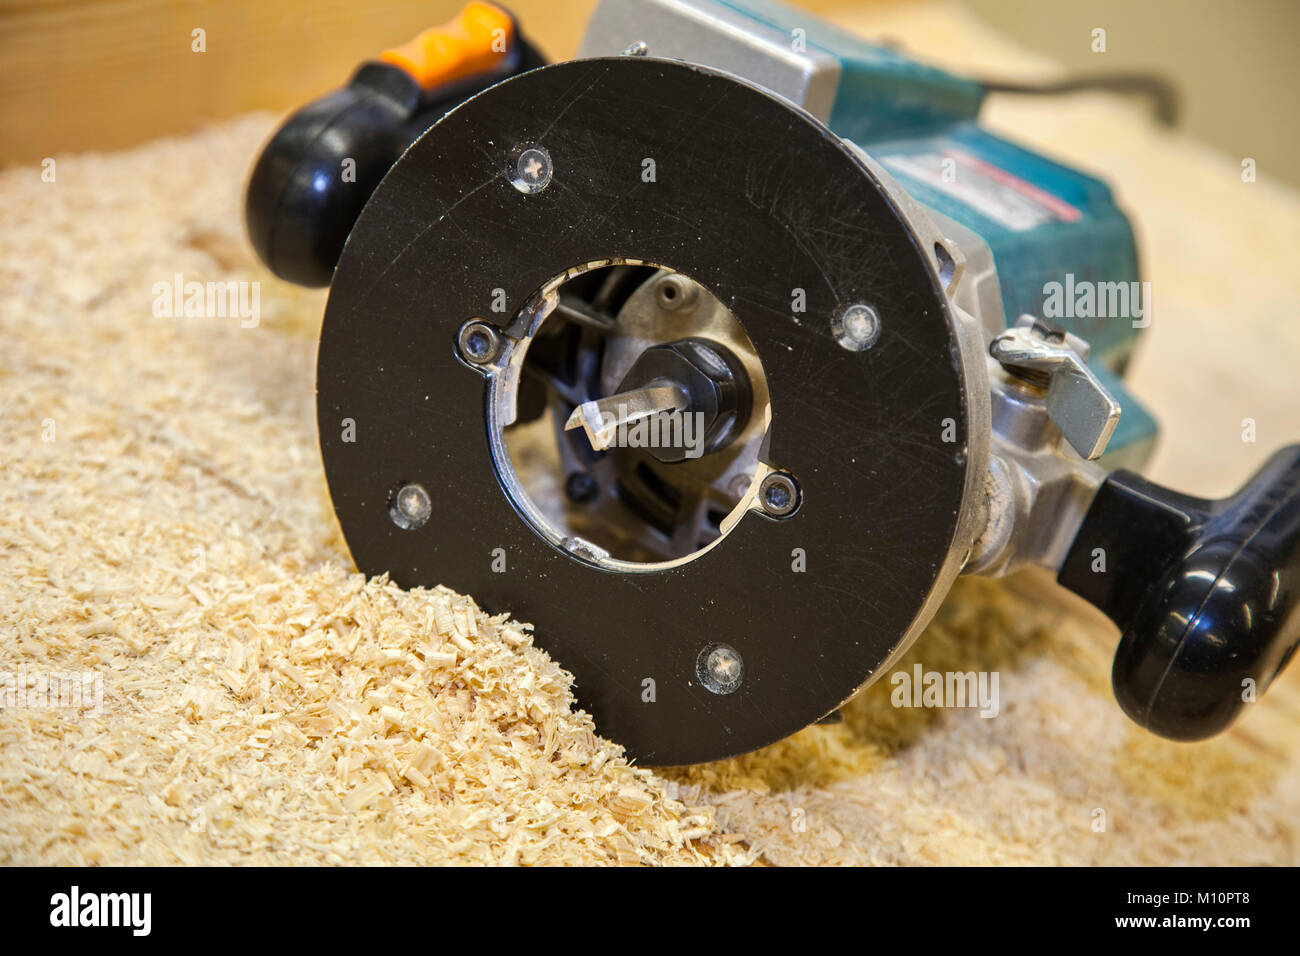 View of a router on a work bench with wood shavings. - Stock Image